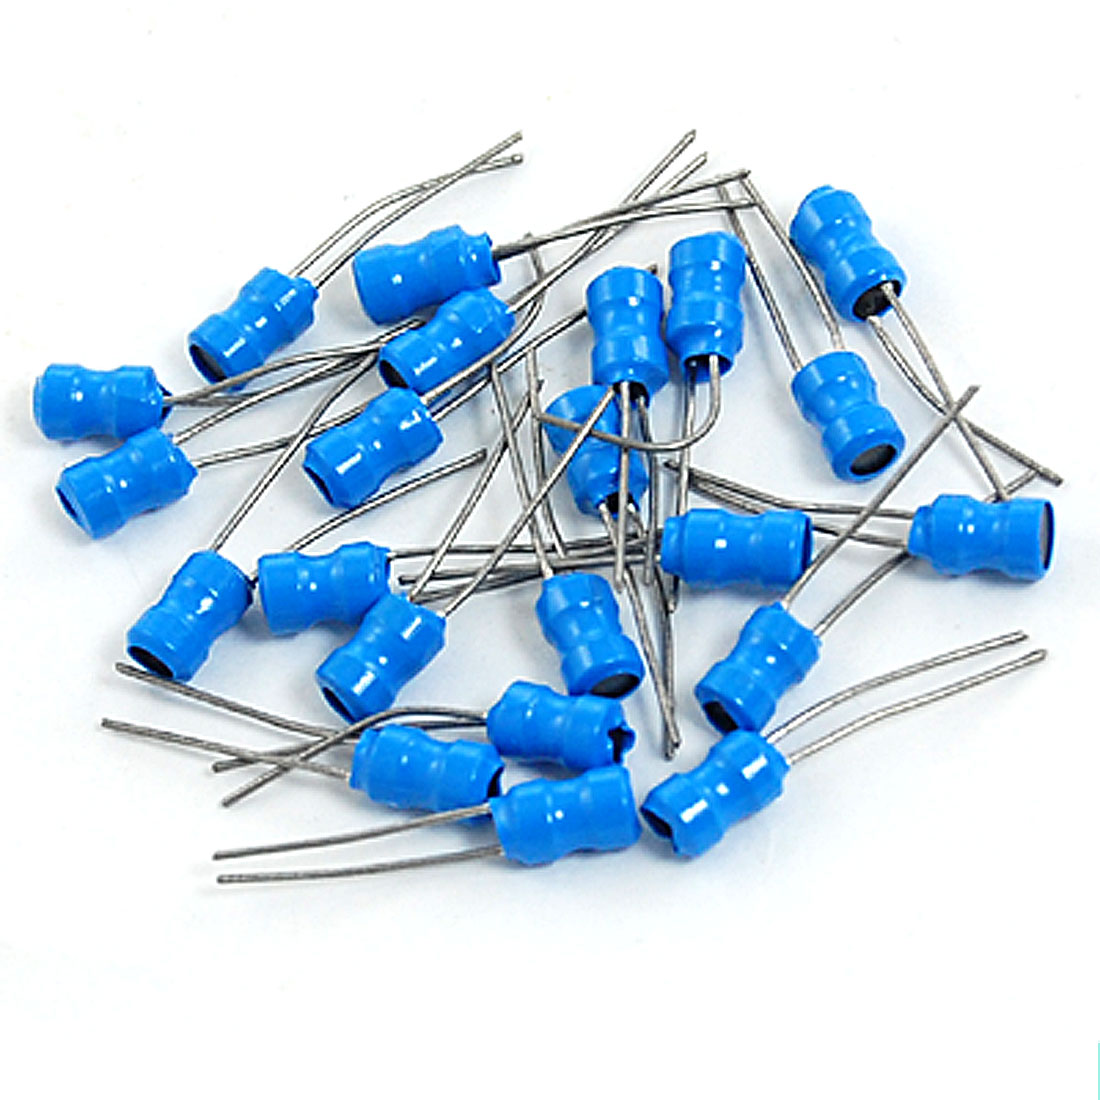 20 Pcs 4mm x 6mm DIP 100UH Electronic Circuit Inductors